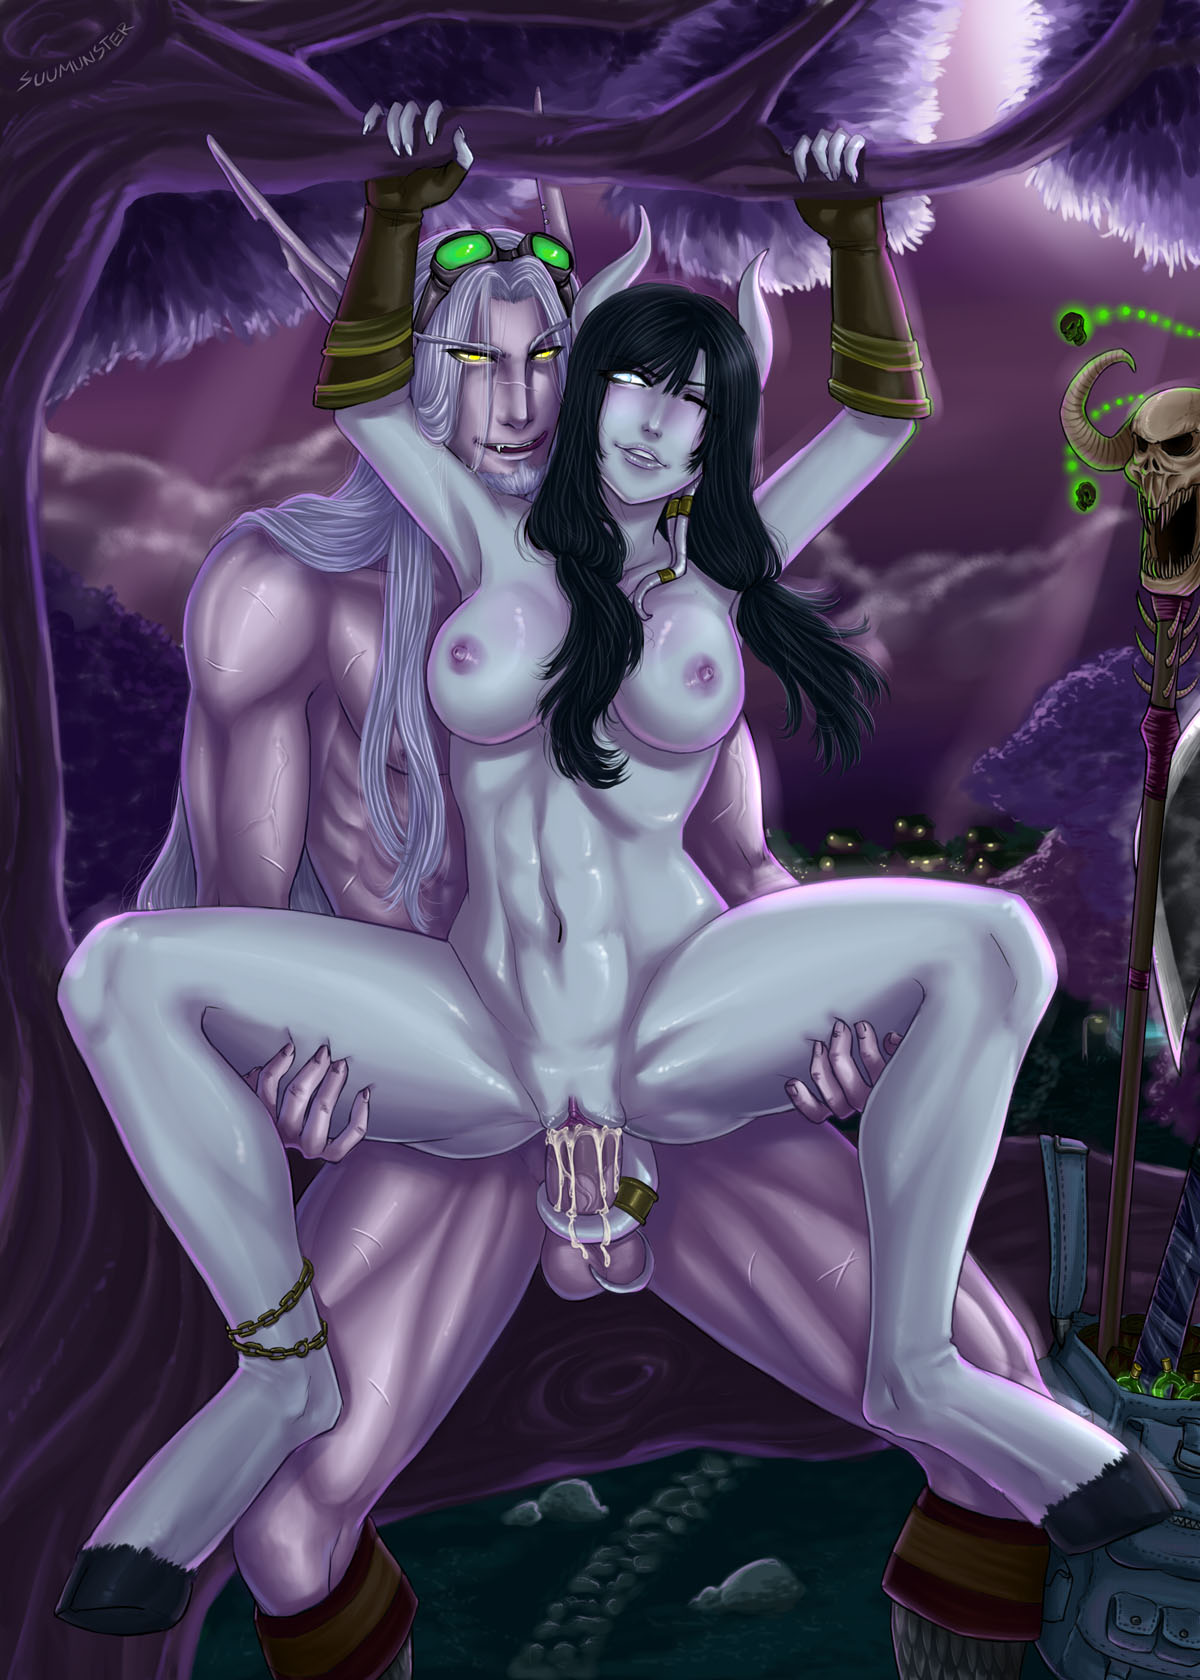 Elf girl sex cartoon pics